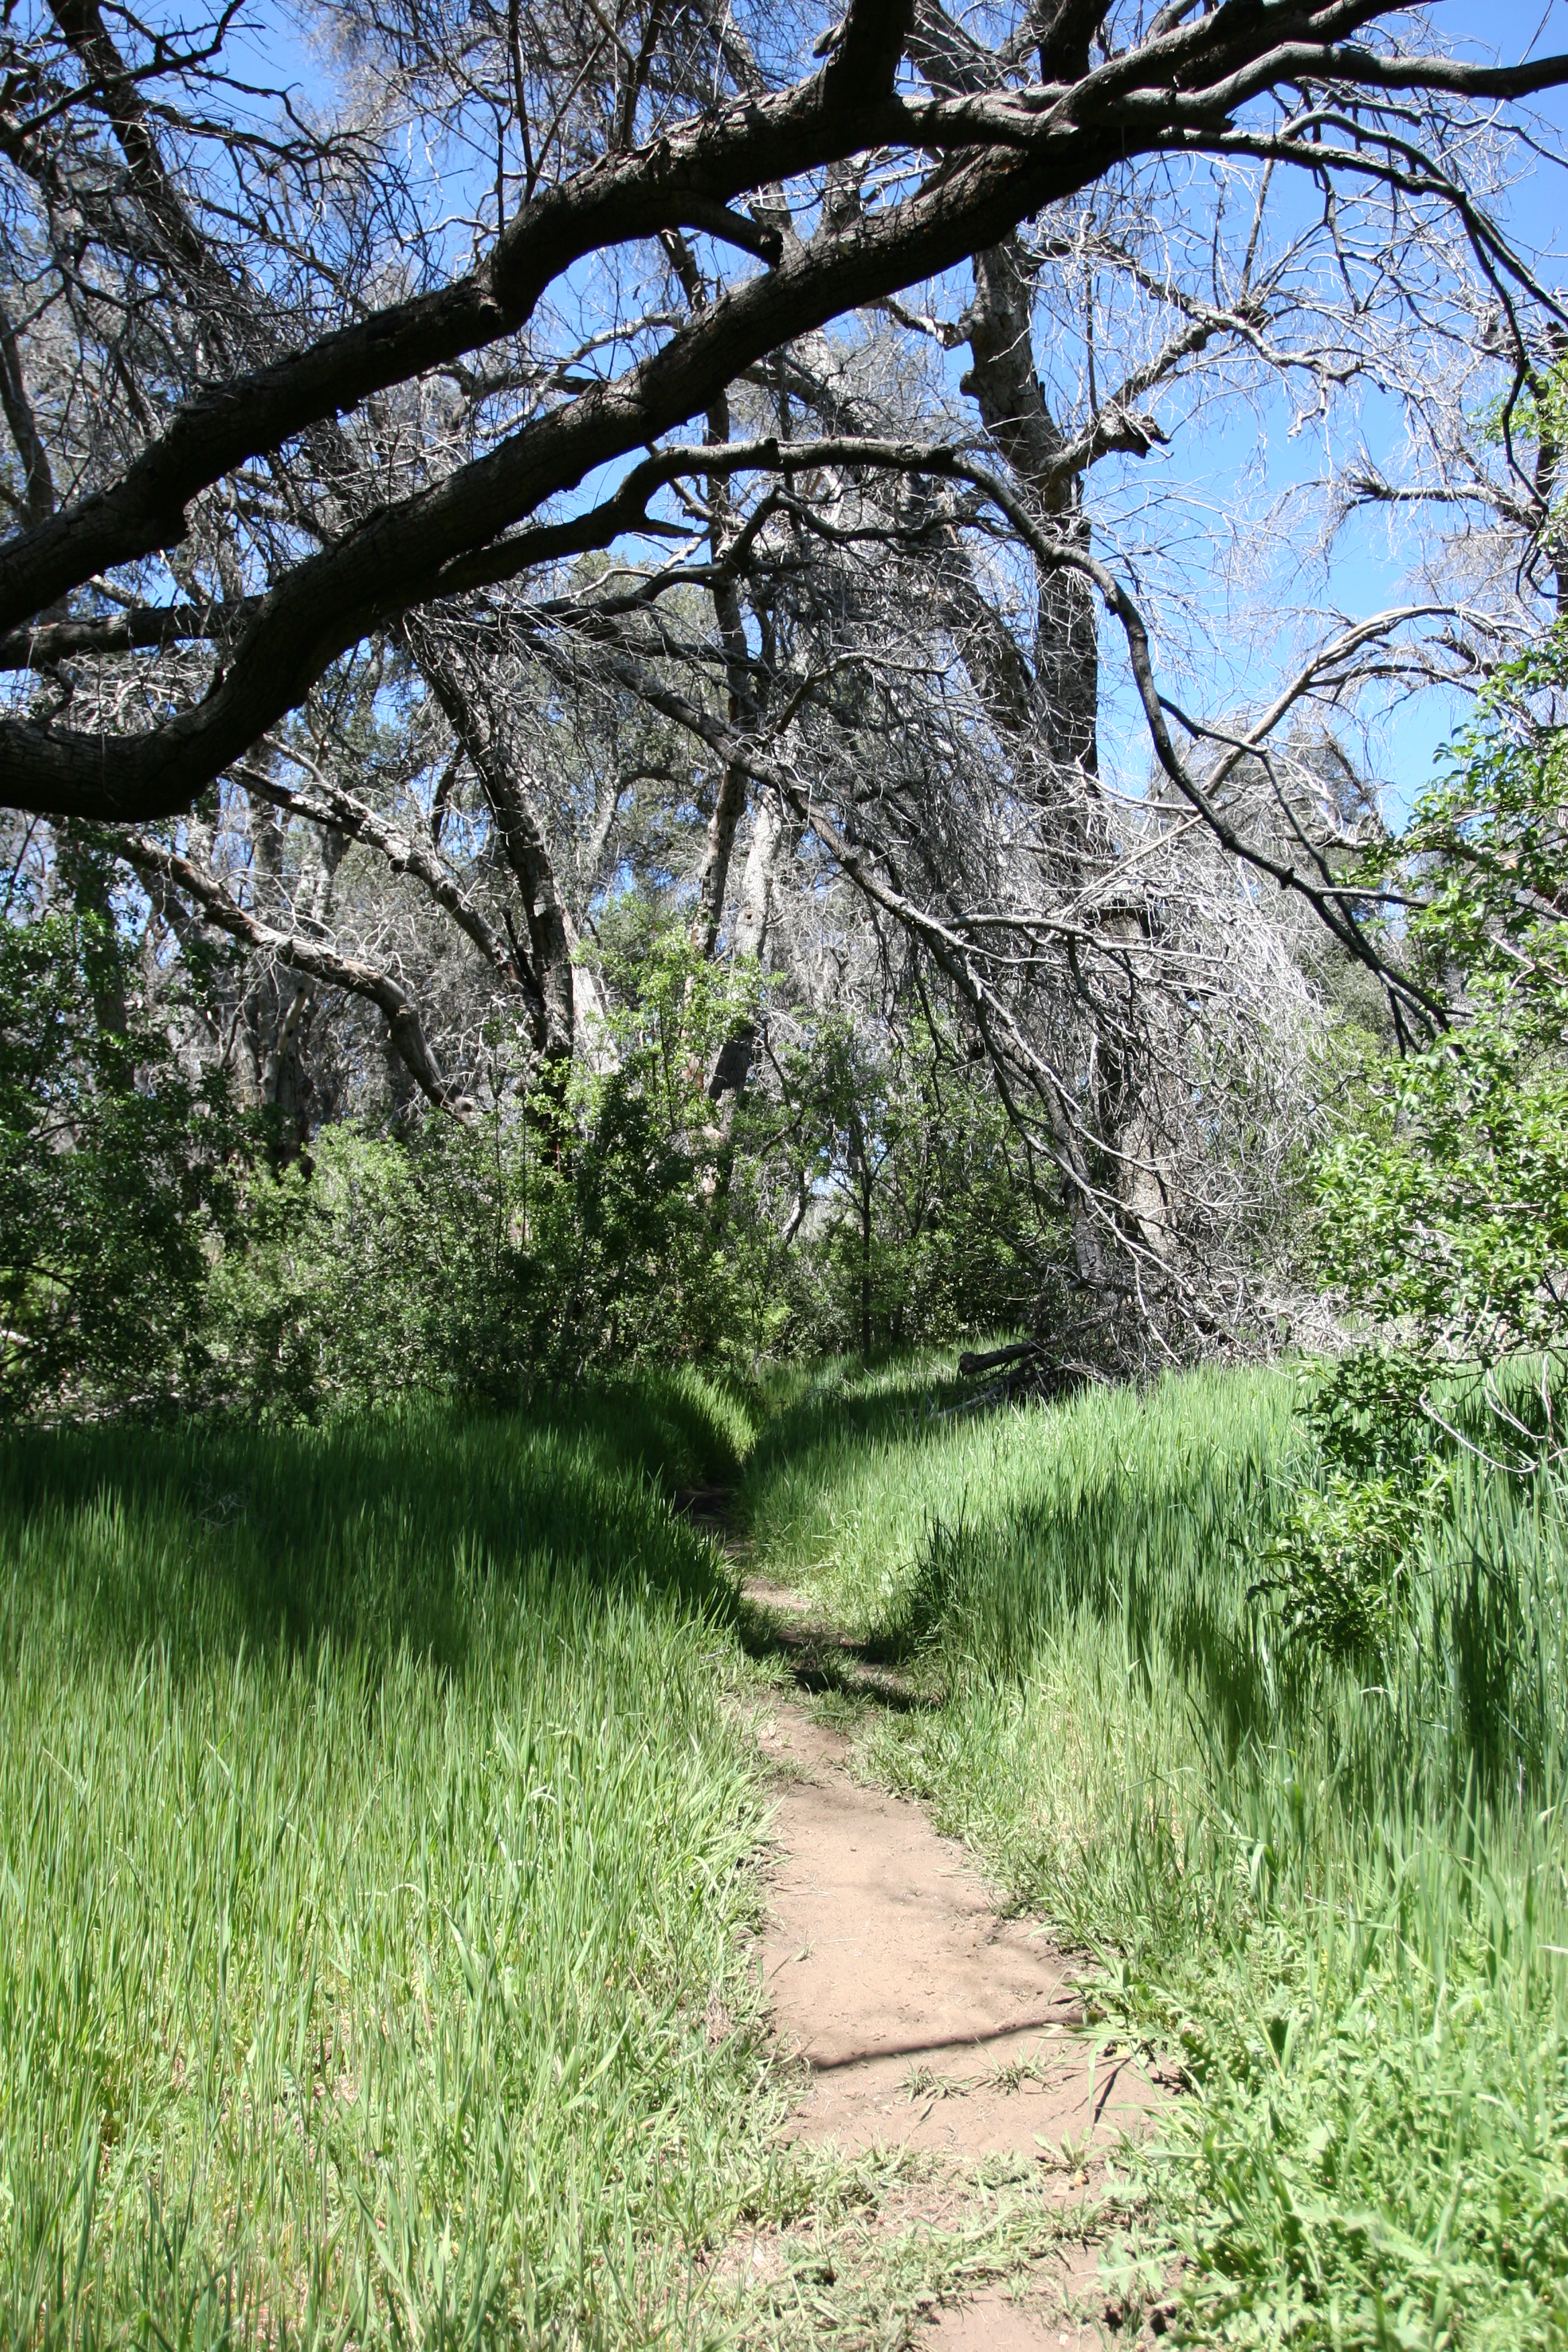 The trail to Harper's Creek and Falls leads through and along some pristine meadows and forests.